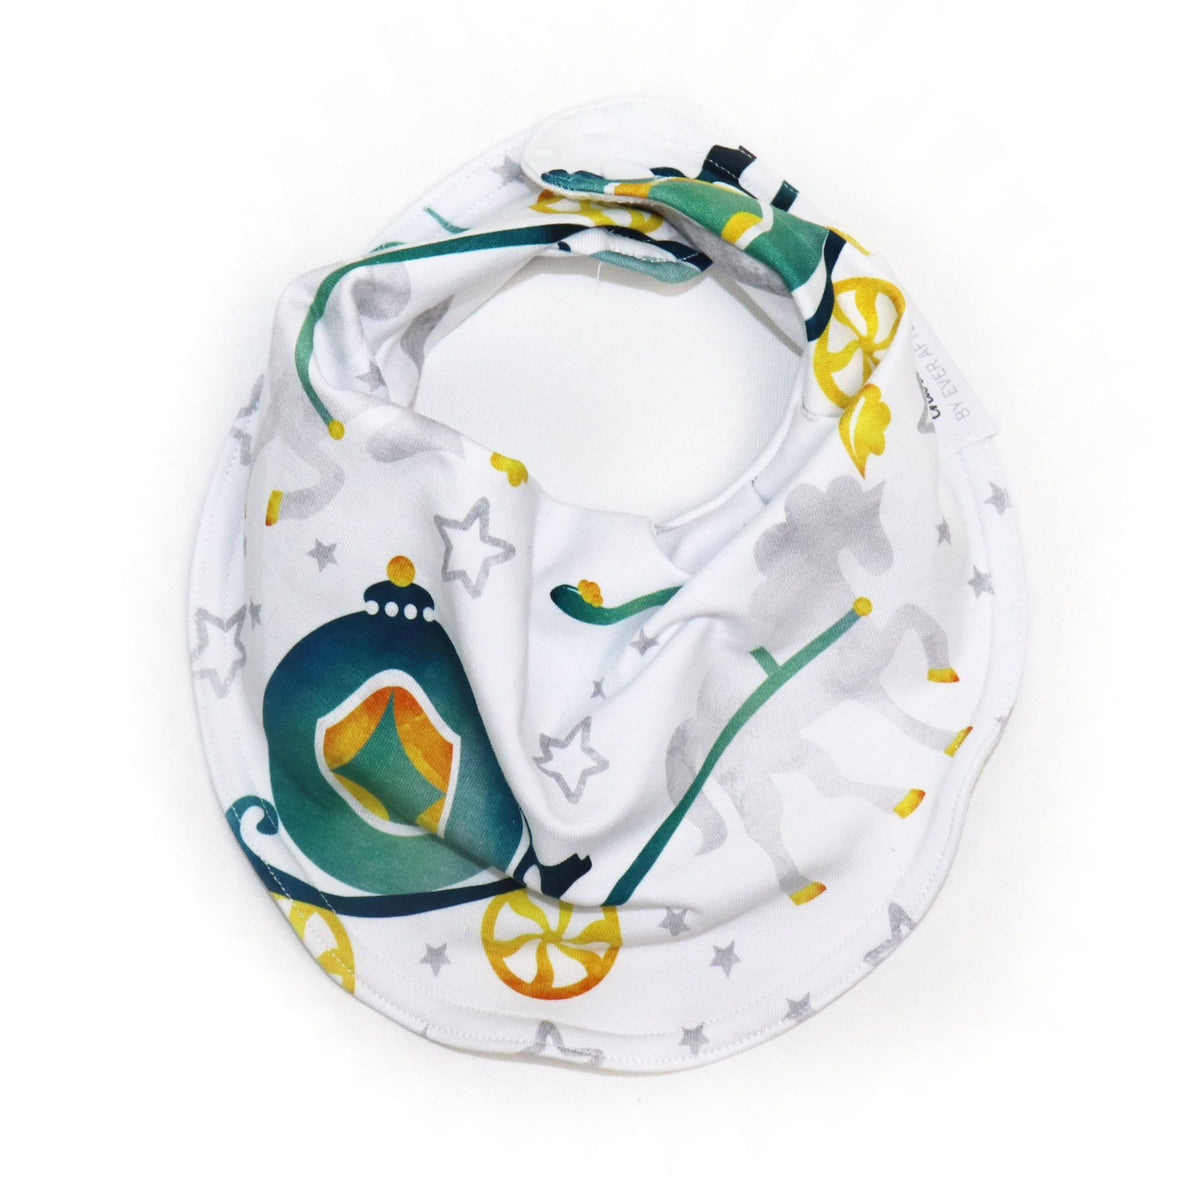 Drooly Bib in Charming Teal Carriage (3883715297314)